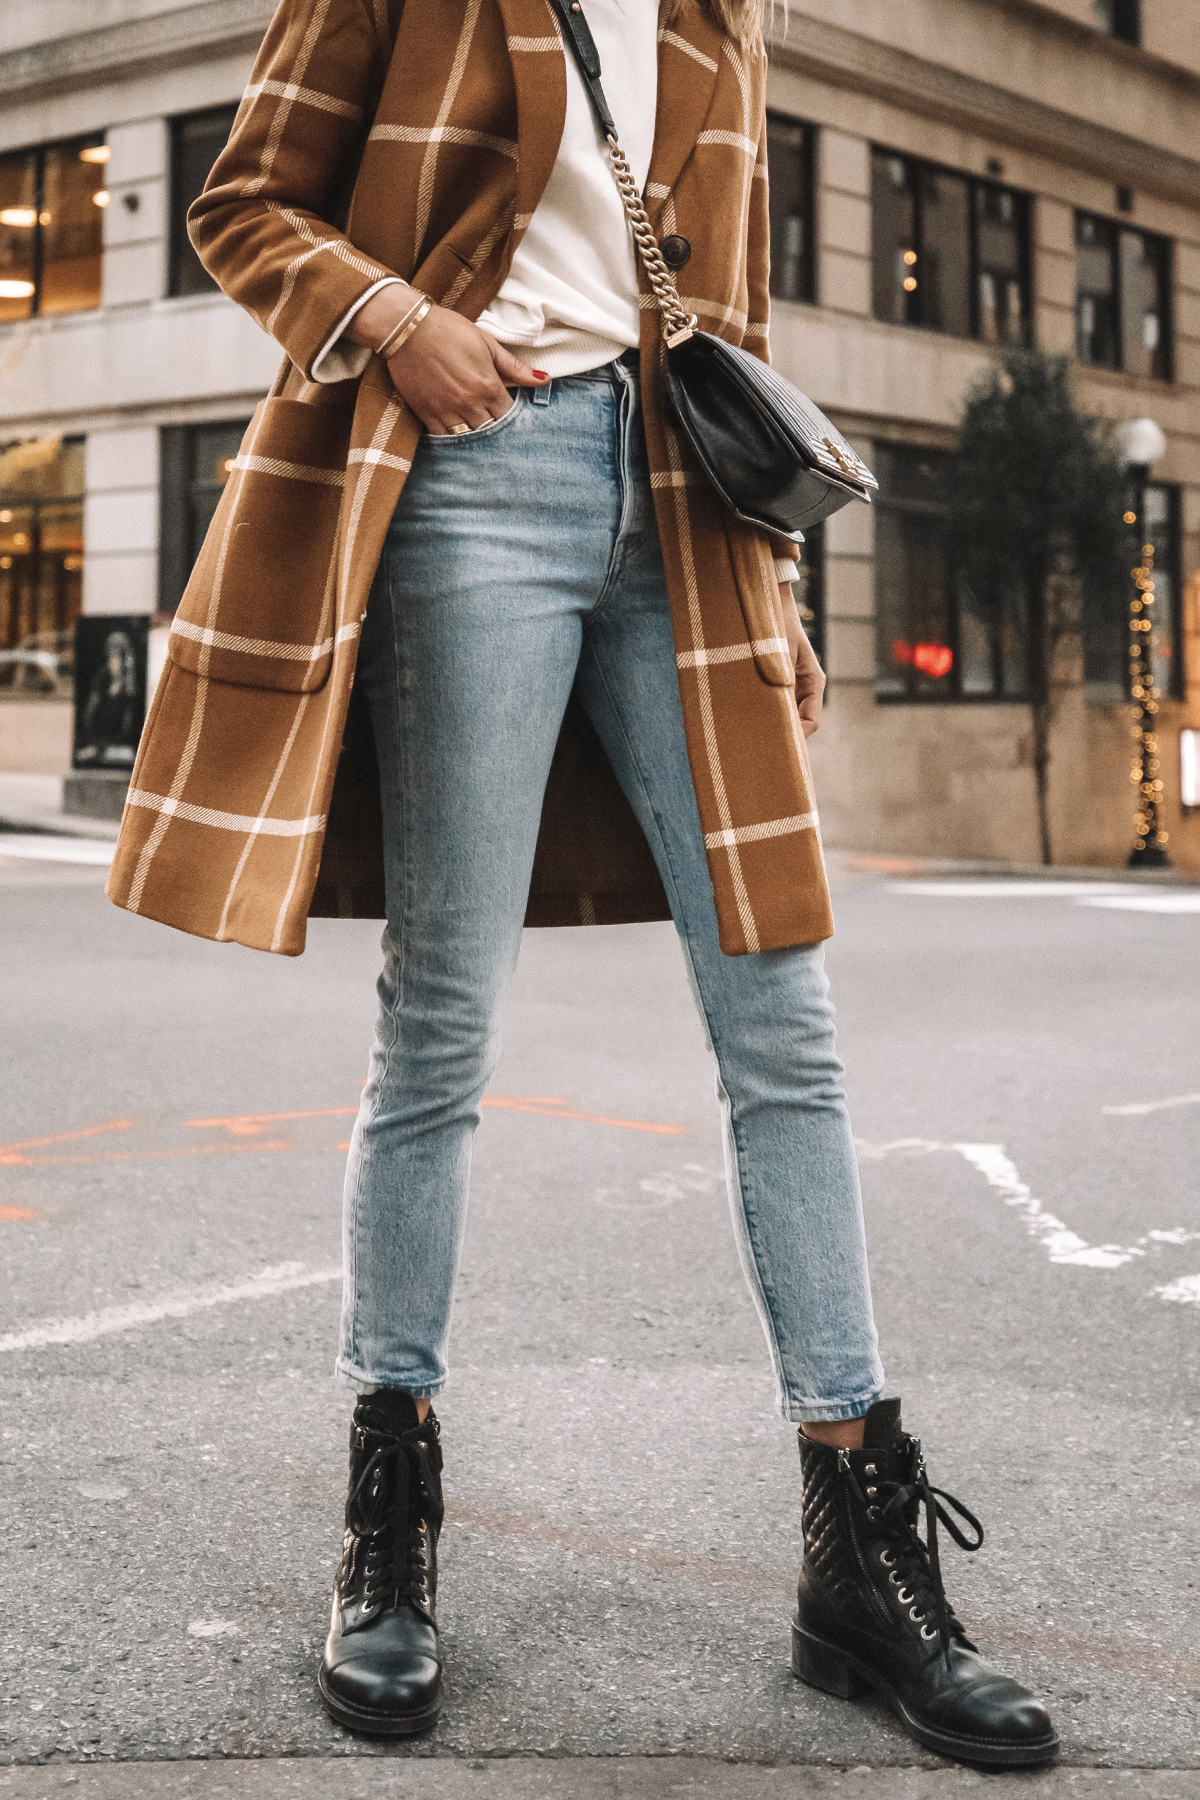 Fashion Jackson Madewell Camel Plaid Coat Levis Jeans Combat Boots Outfit